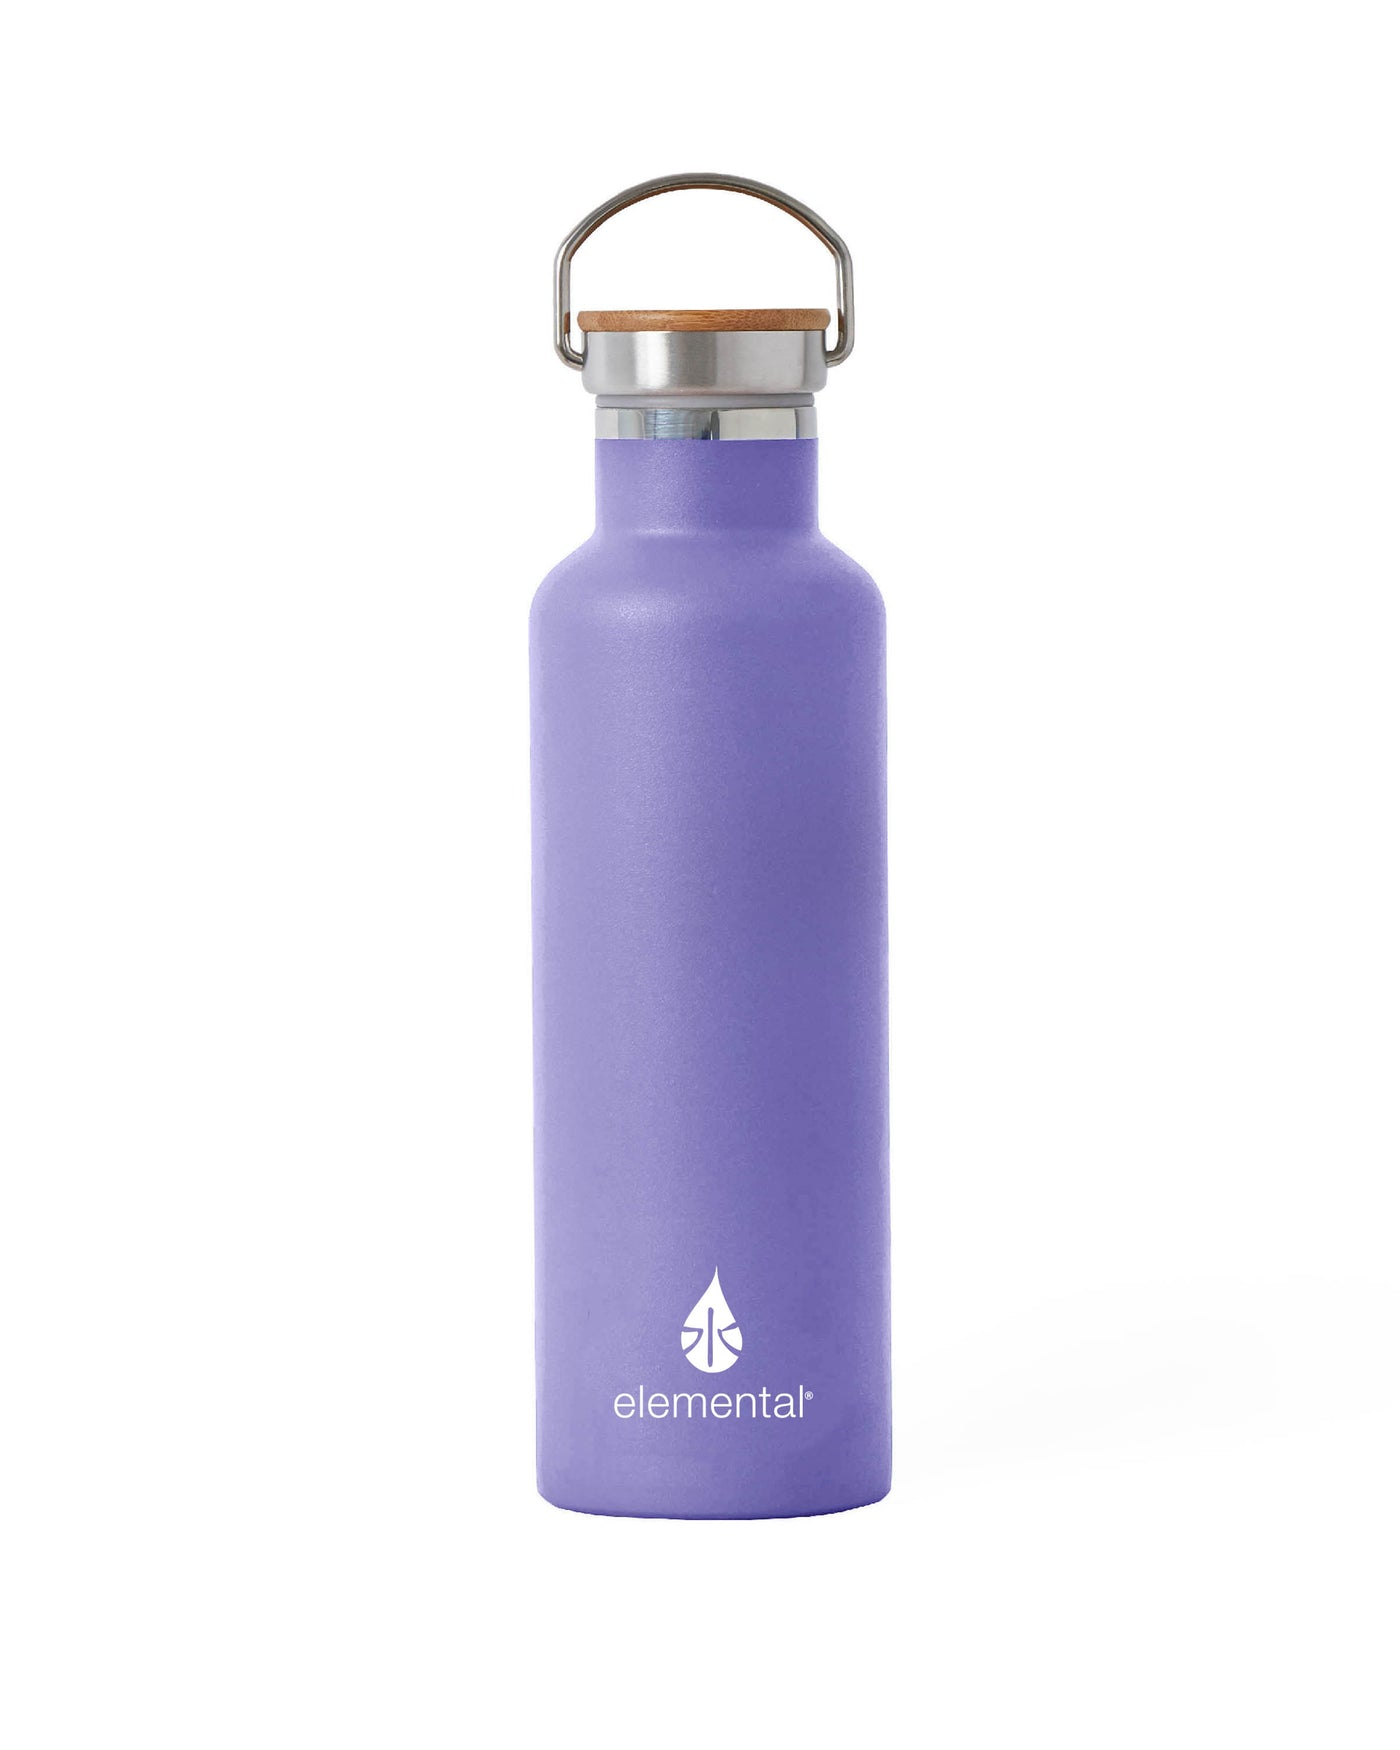 Elemental Stainless Steel Classic Water Bottle - 25oz Lavender - Elemental Gifts